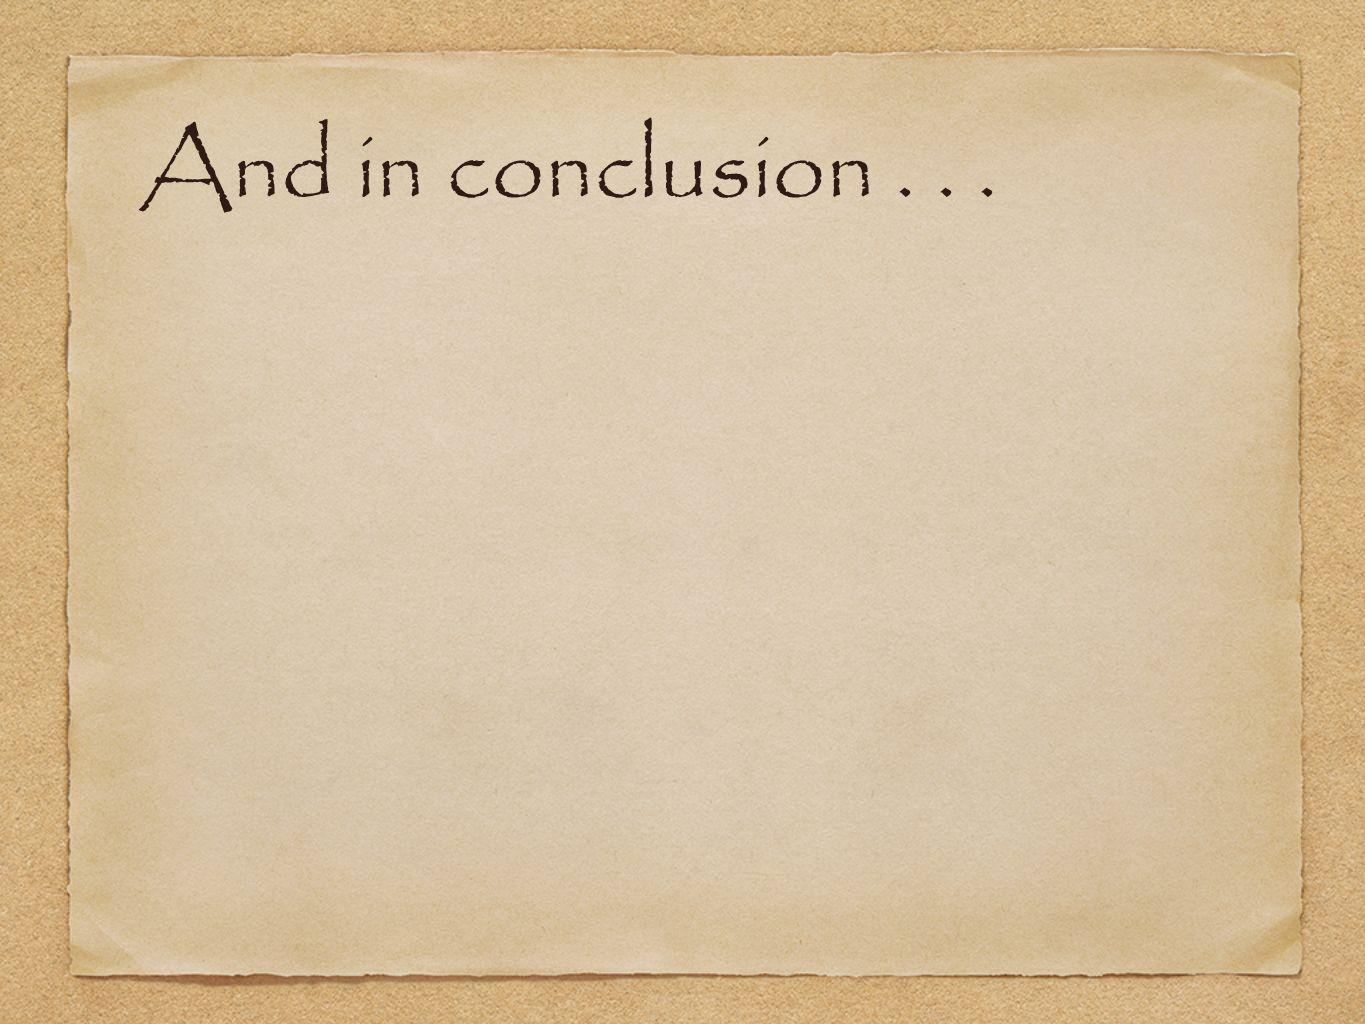 And in conclusion . . .